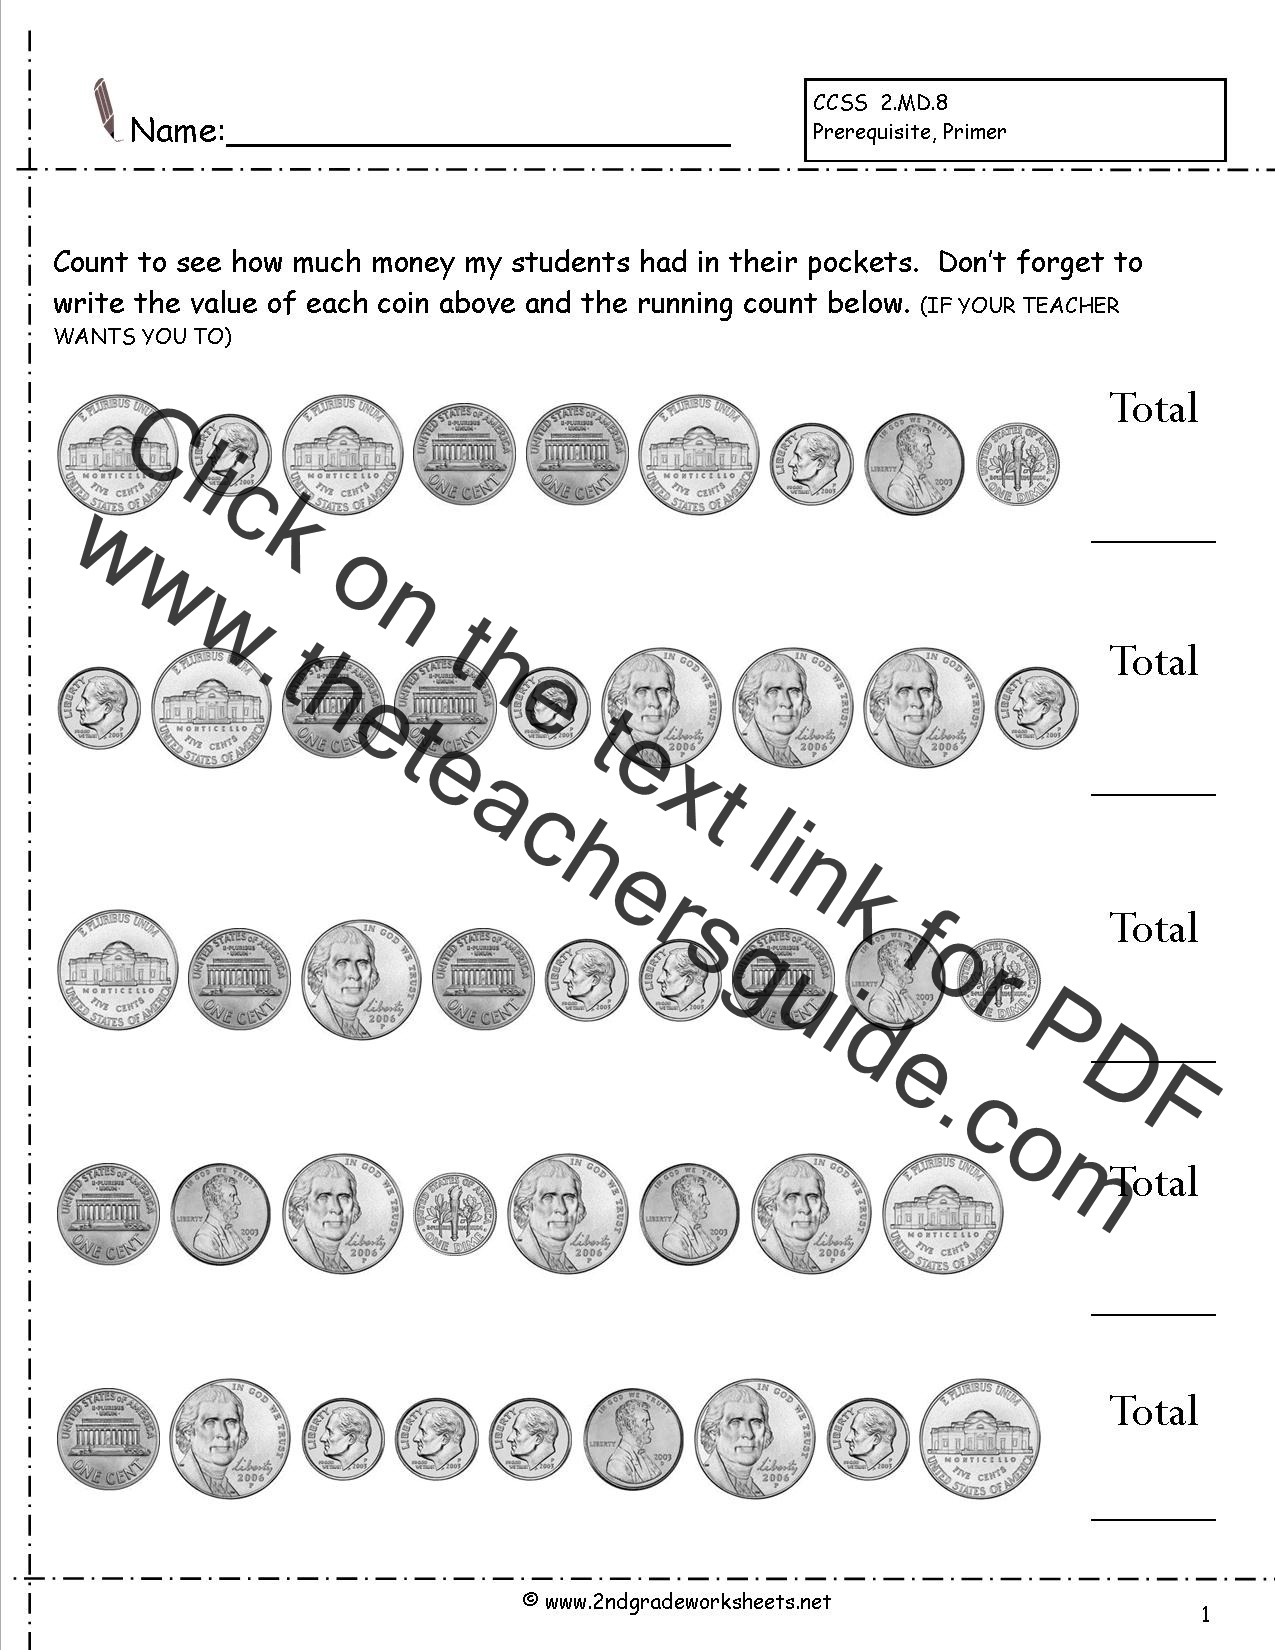 Counting Coins and Money Worksheets and Printouts – Second Grade Printable Worksheets